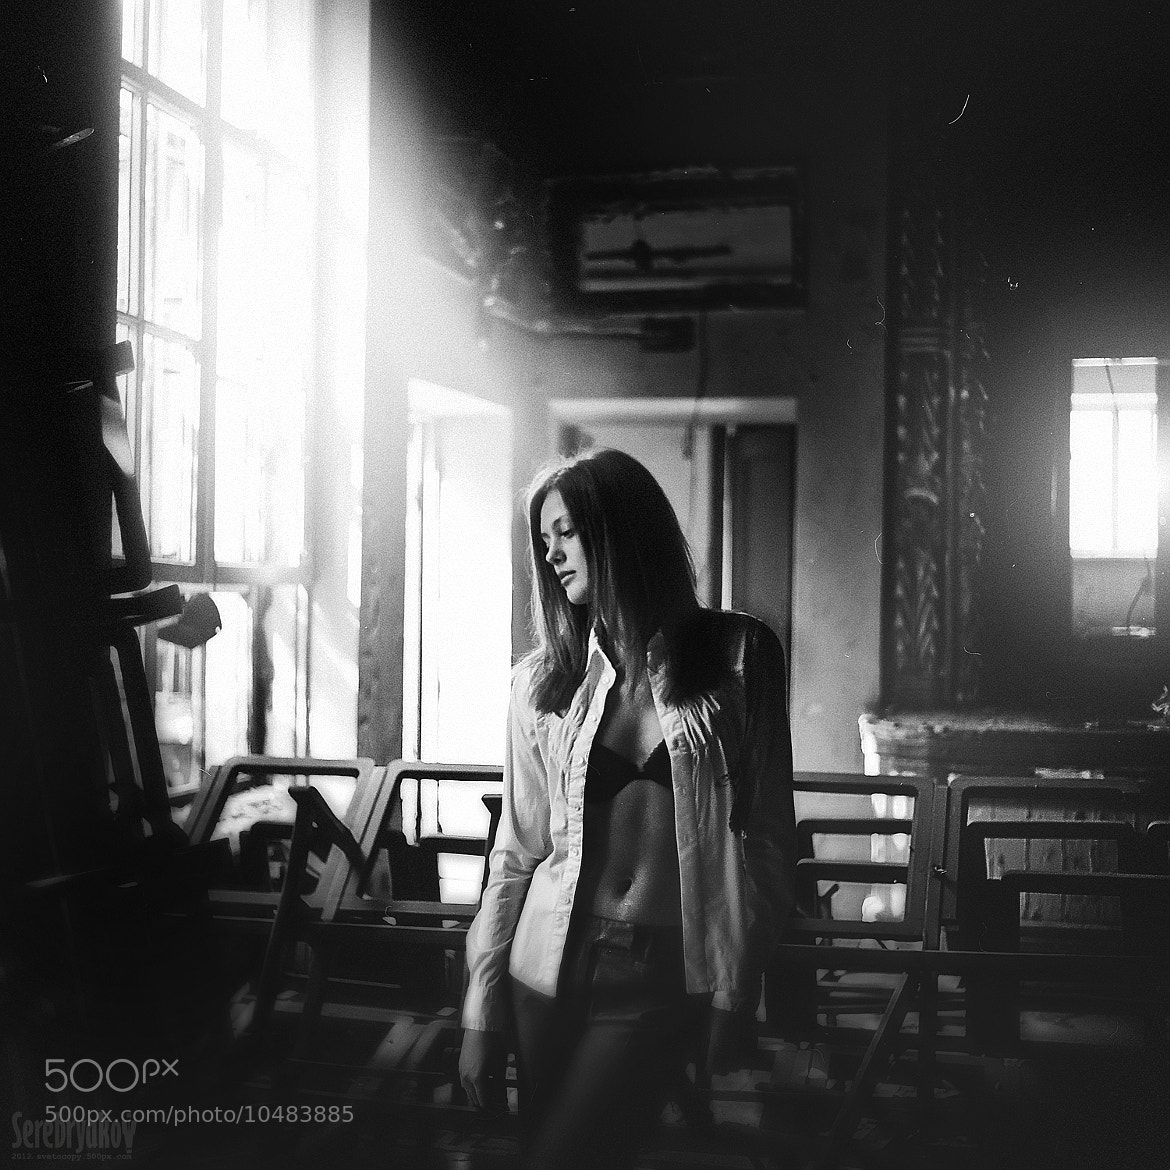 Photograph InLight by Maxim Serebryakov on 500px